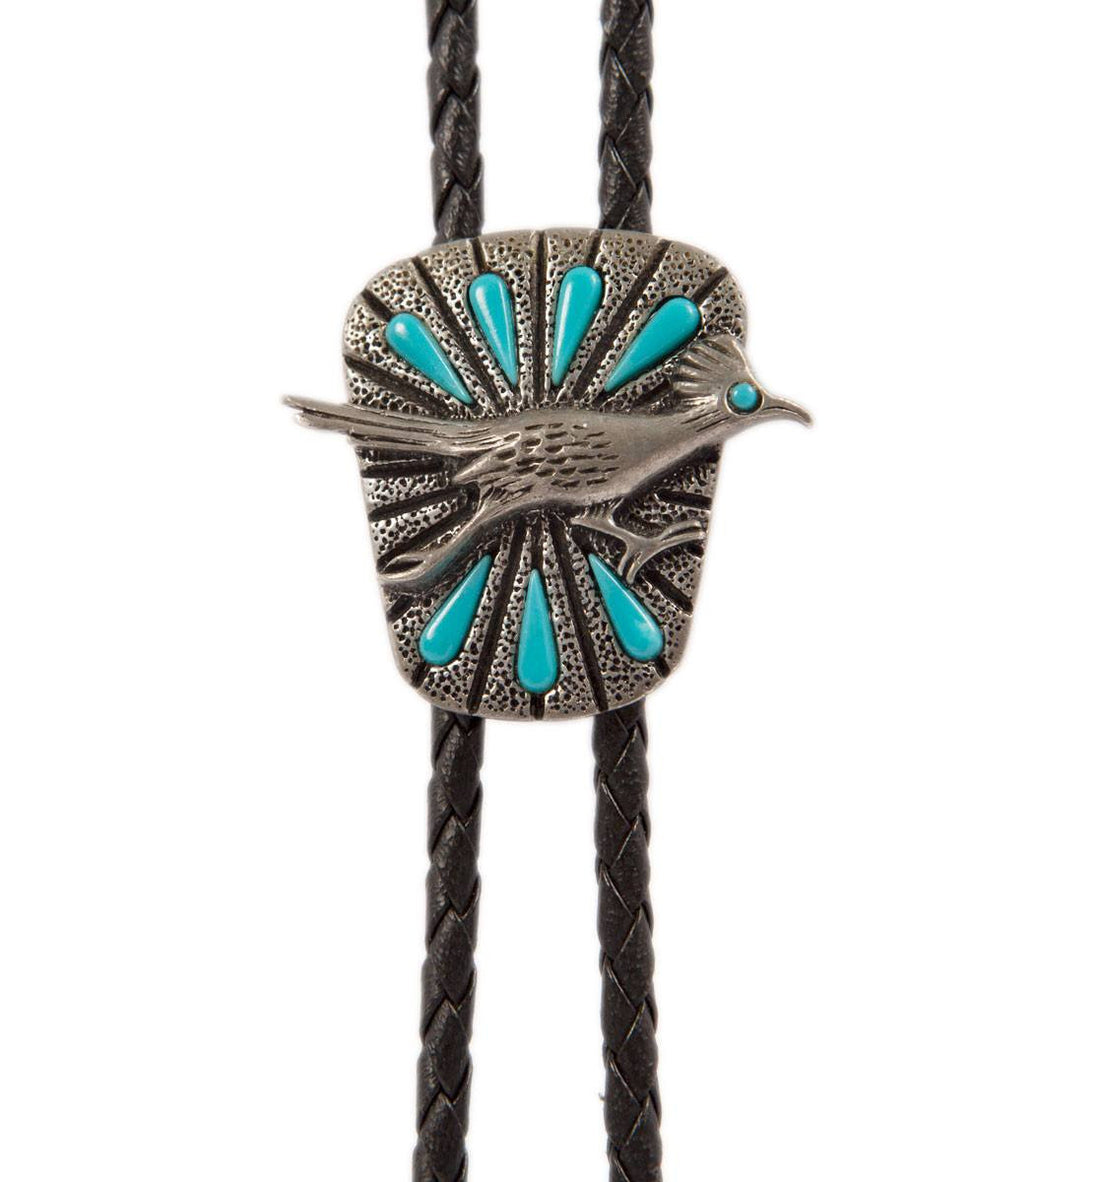 Vintage Road Runner Bolo Tie - Vintage - Iron and Resin